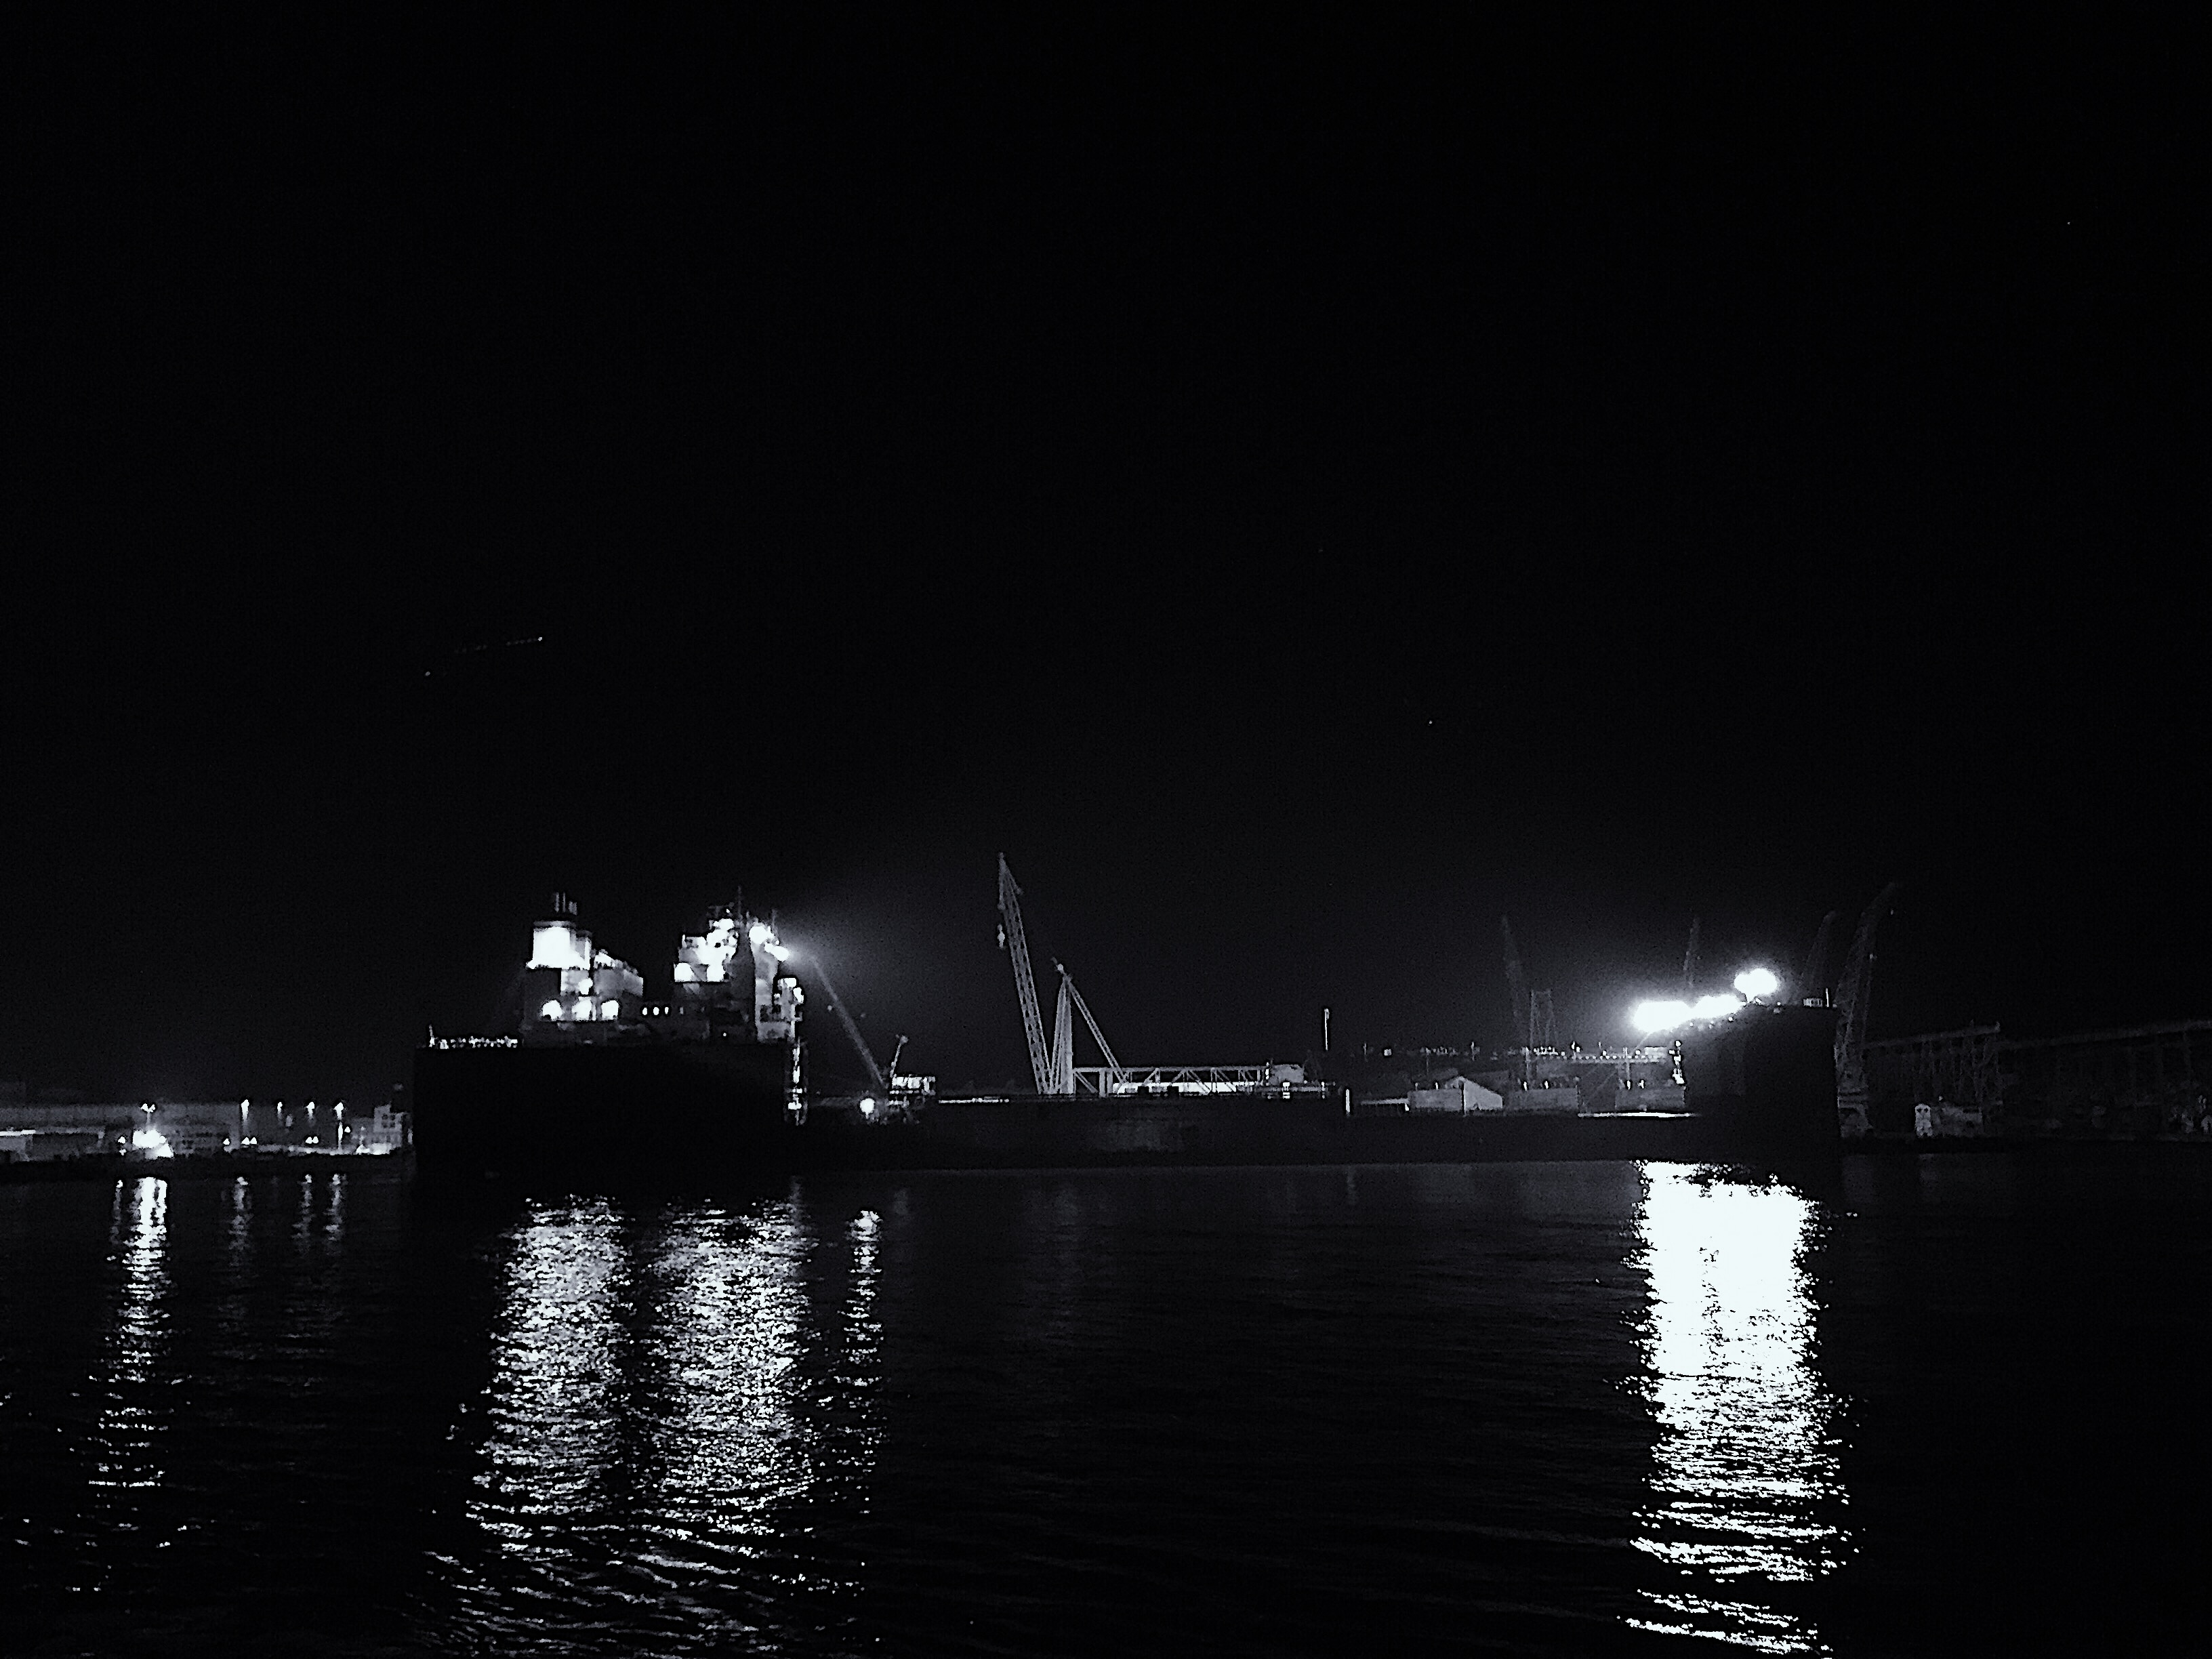 A night time photo of a cargo ship being serviced in a shipyard.